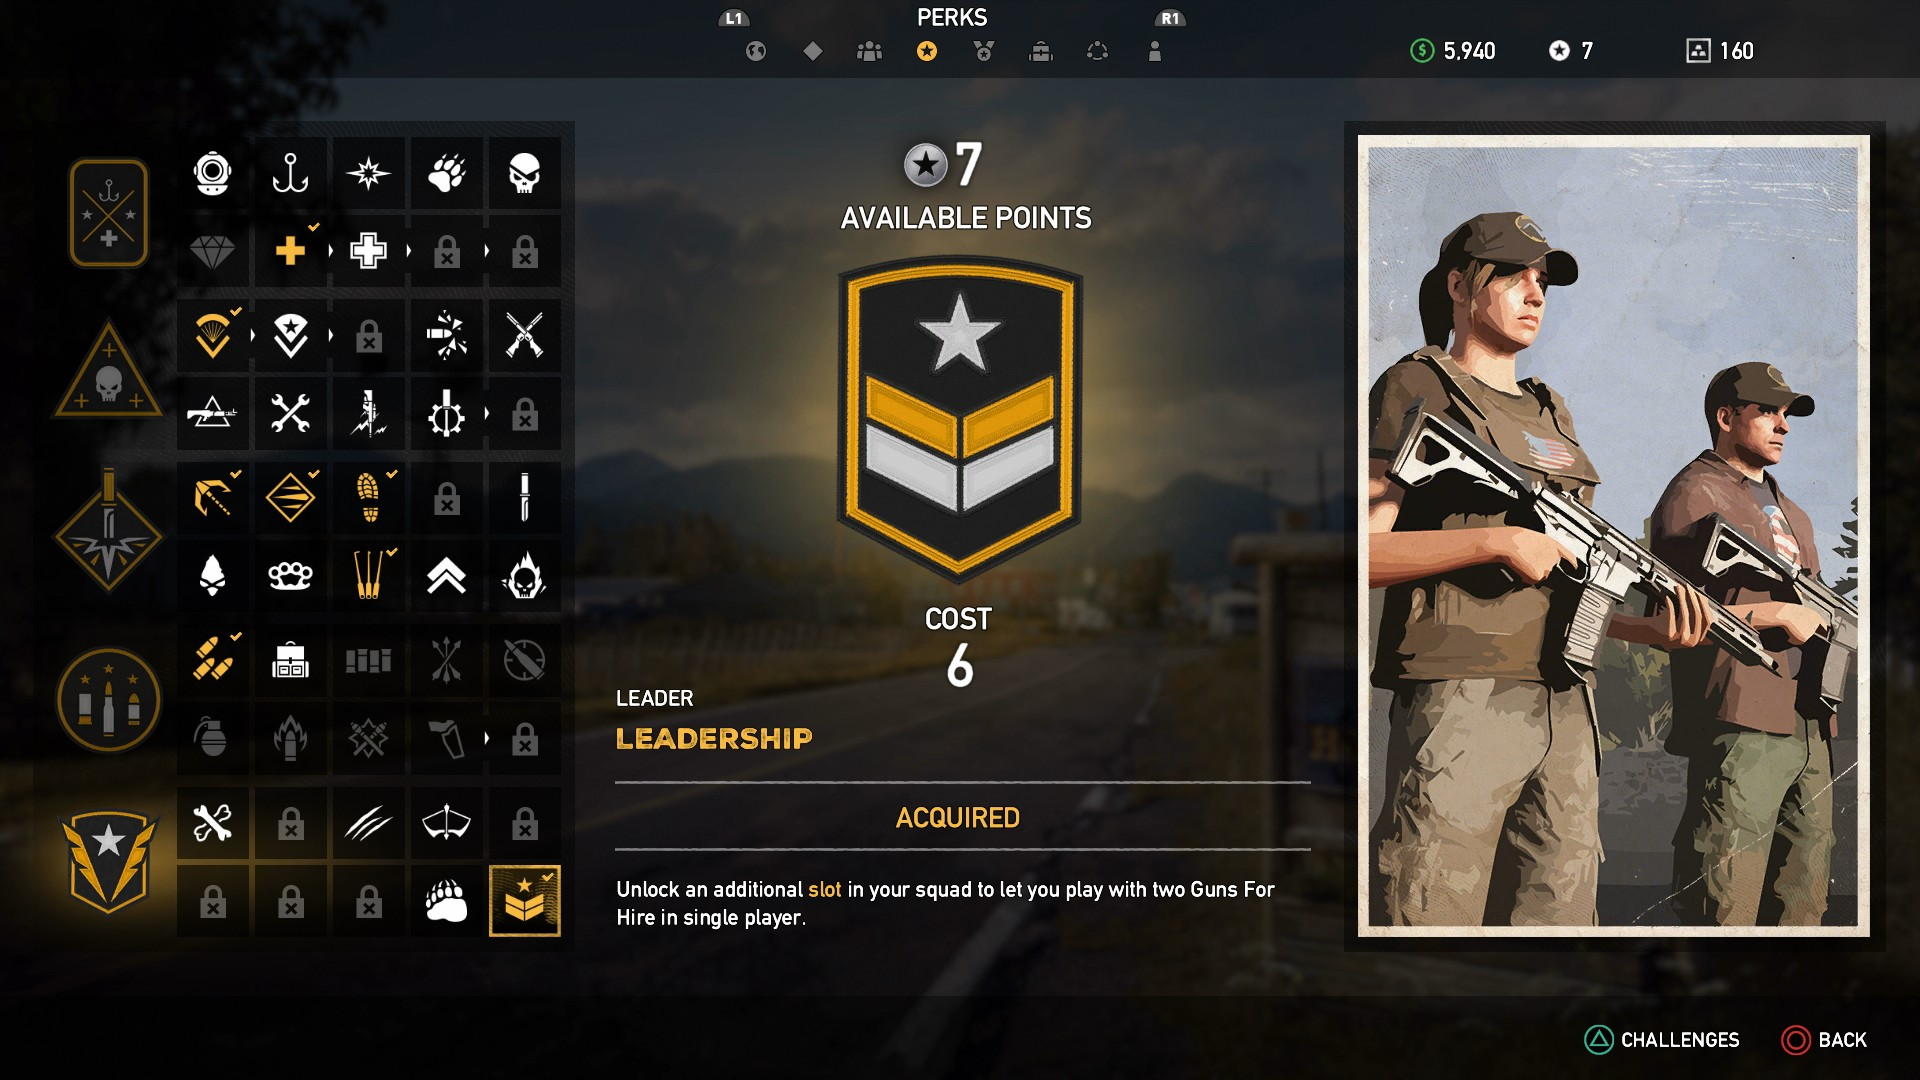 Far Cry 5 Perks Best Perks To Unlock In Far Cry 5 And How To Earn Perk Points Usgamer